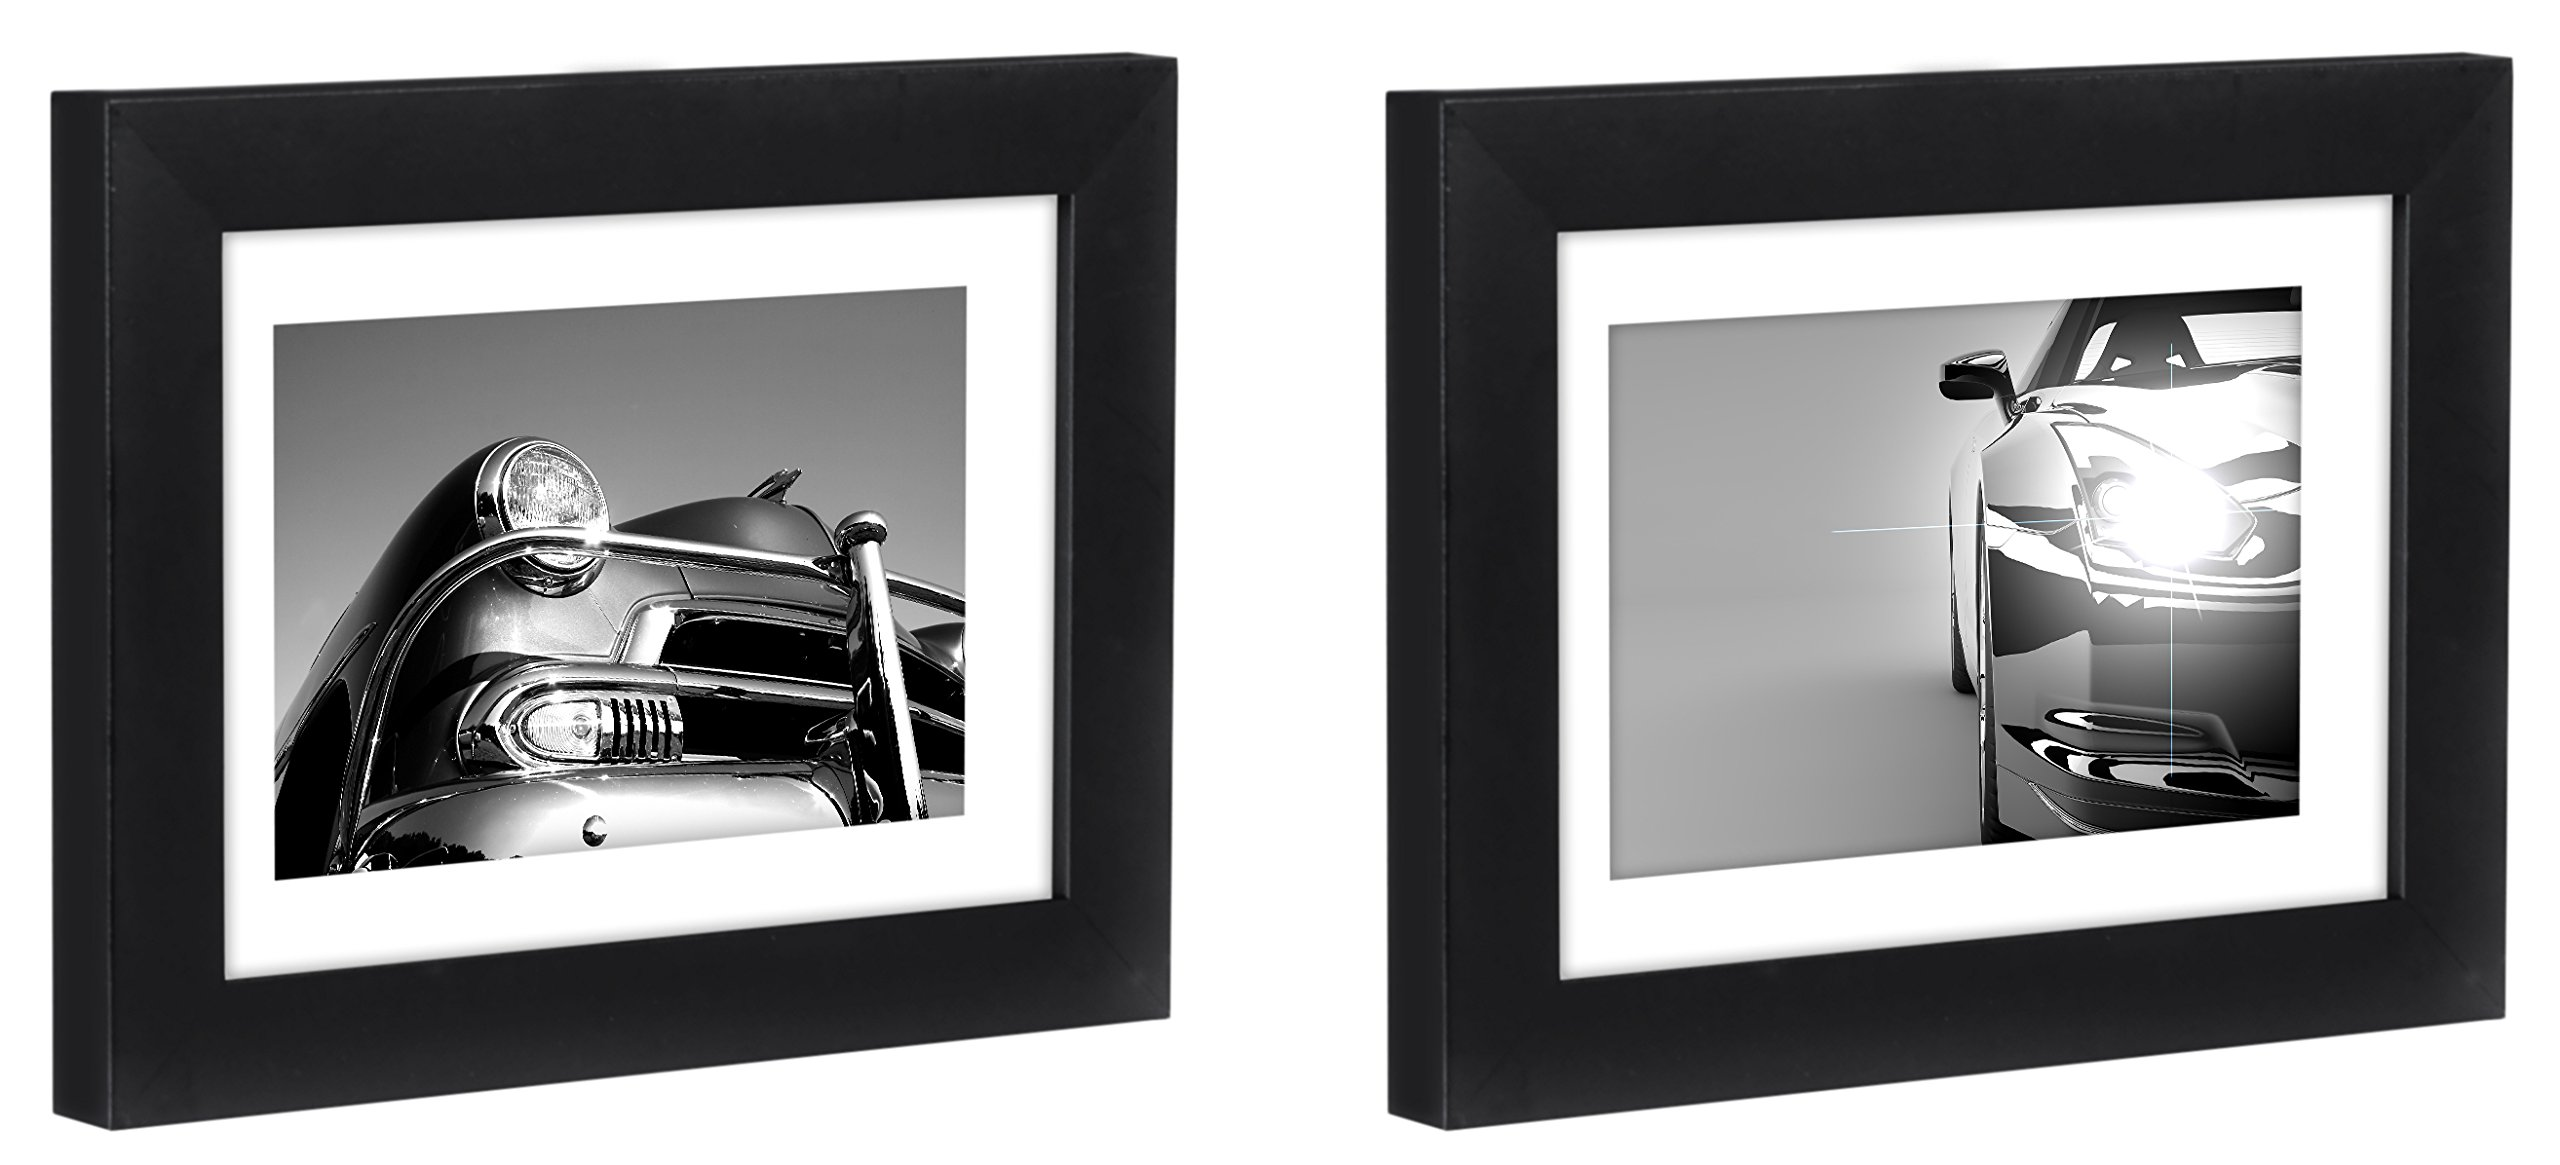 Americanflat Two Black Tabletop Frames - Display Pictures Sized 4x6 Inches Mat 5x7 Inches without Mat – Glass Fronts, Easel Stands, Ready to Display on Desktop Tabletop